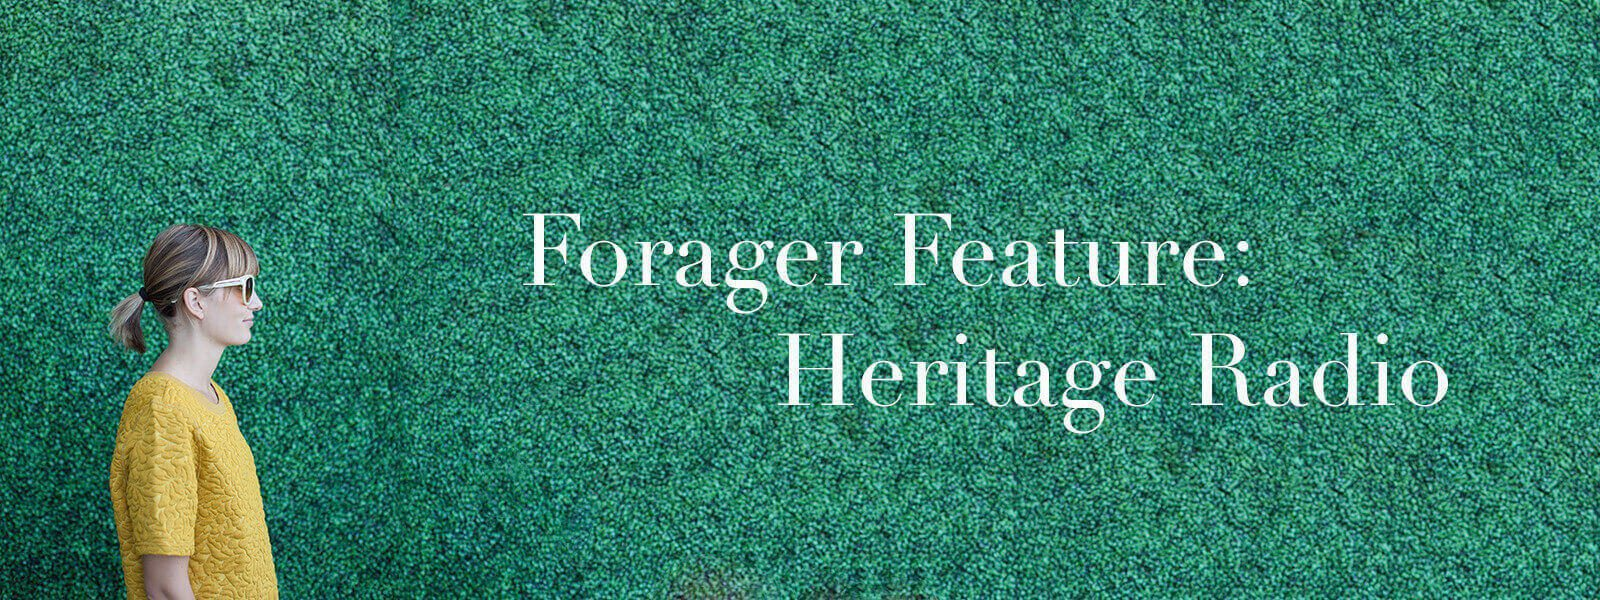 """Meghan in profile with text """"Forager Feature: Heritage Radio."""""""